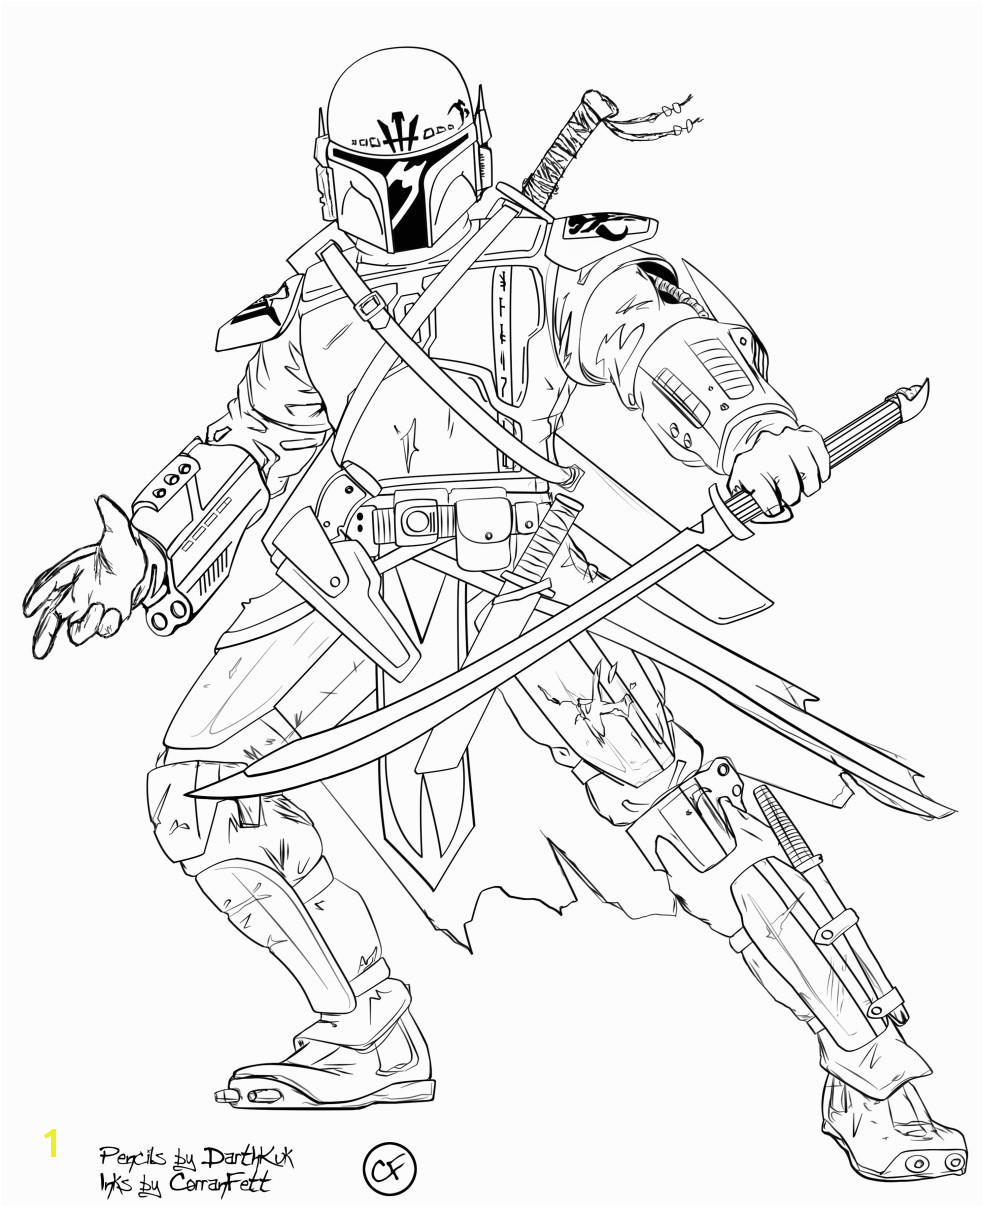 Malvorlagen Star Wars Clone Wars Awesome Star Wars Coloring Pages Captain Rex Free Coloring Library